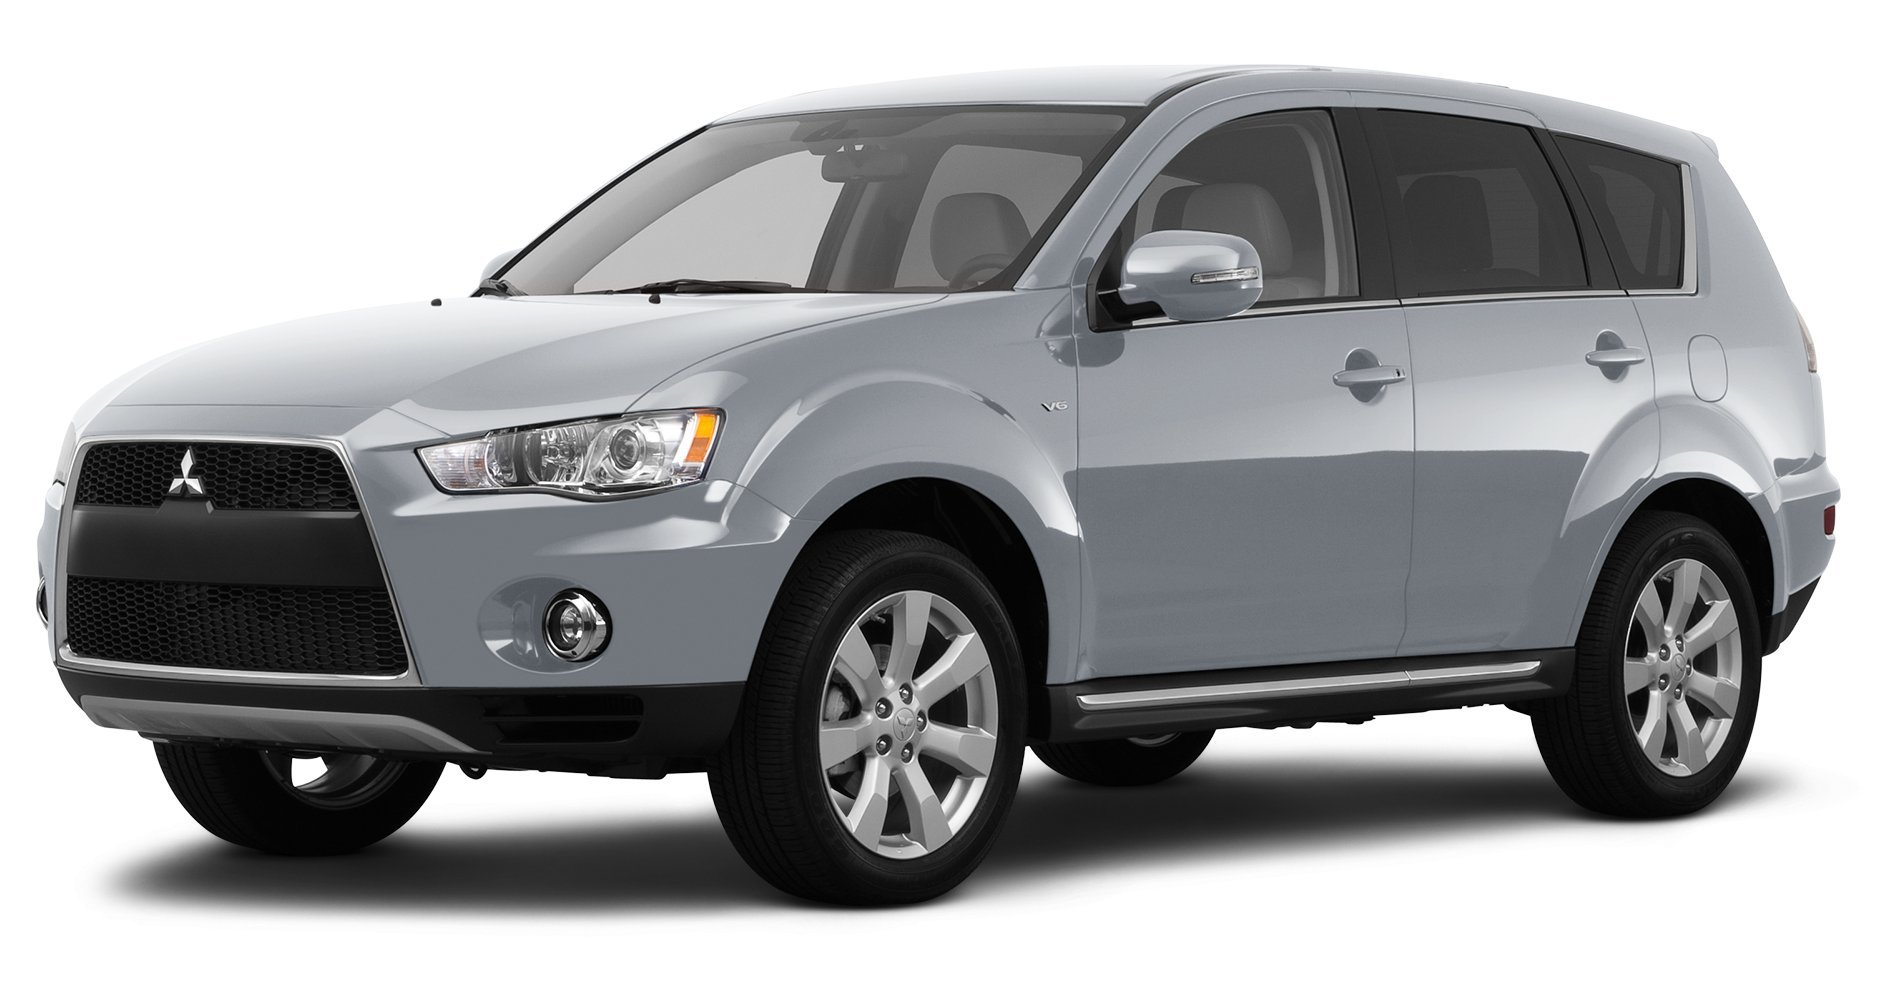 2012 ford explorer reviews images and specs. Black Bedroom Furniture Sets. Home Design Ideas